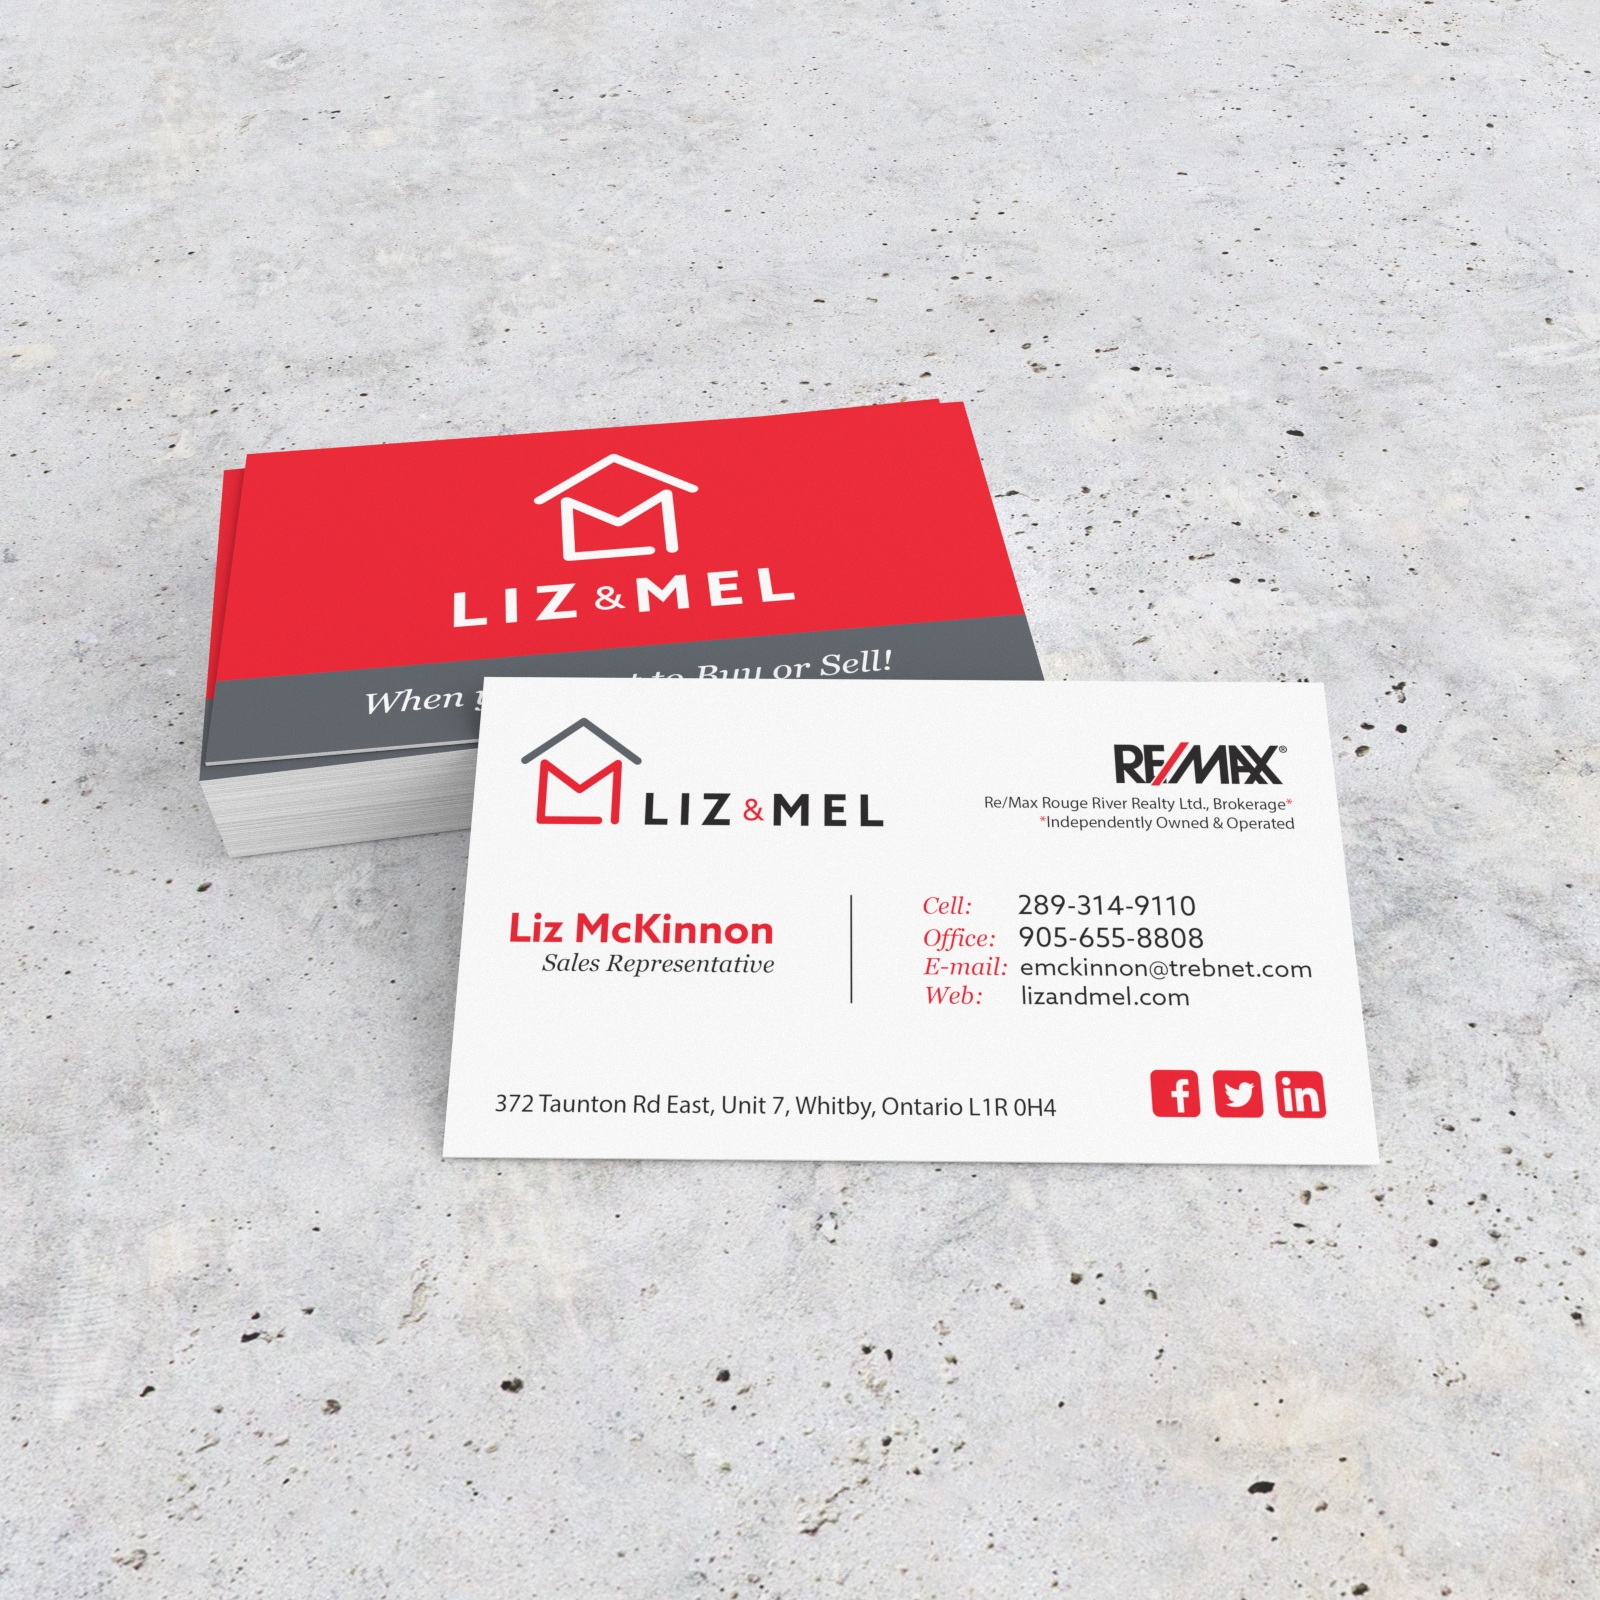 Liz and Mel Logo and Business Card